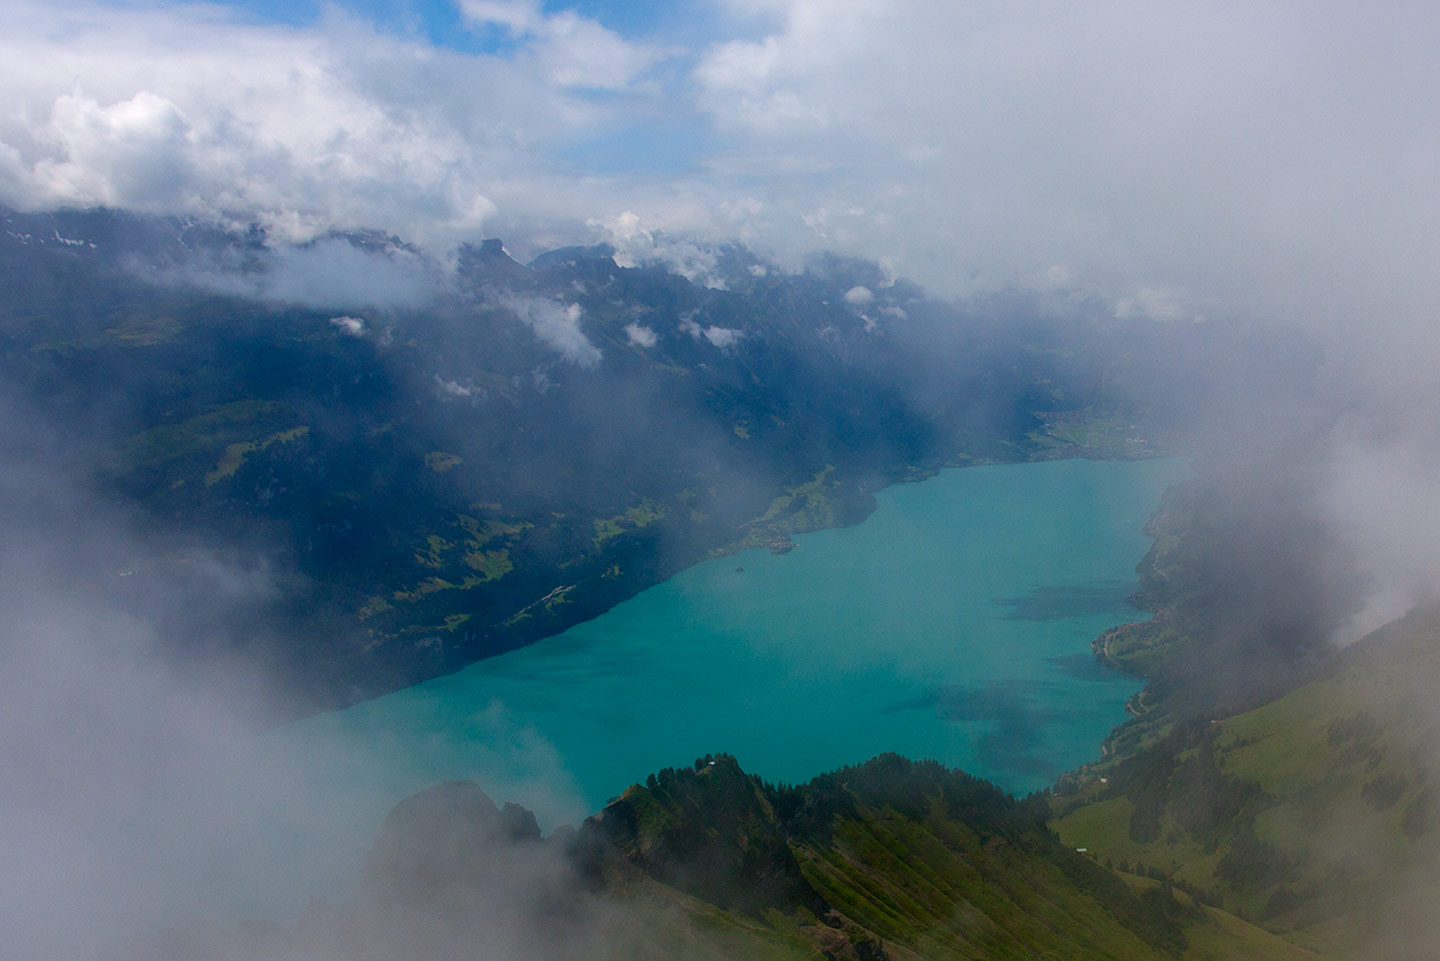 Image of Lake Brienz in the Swiss Alps